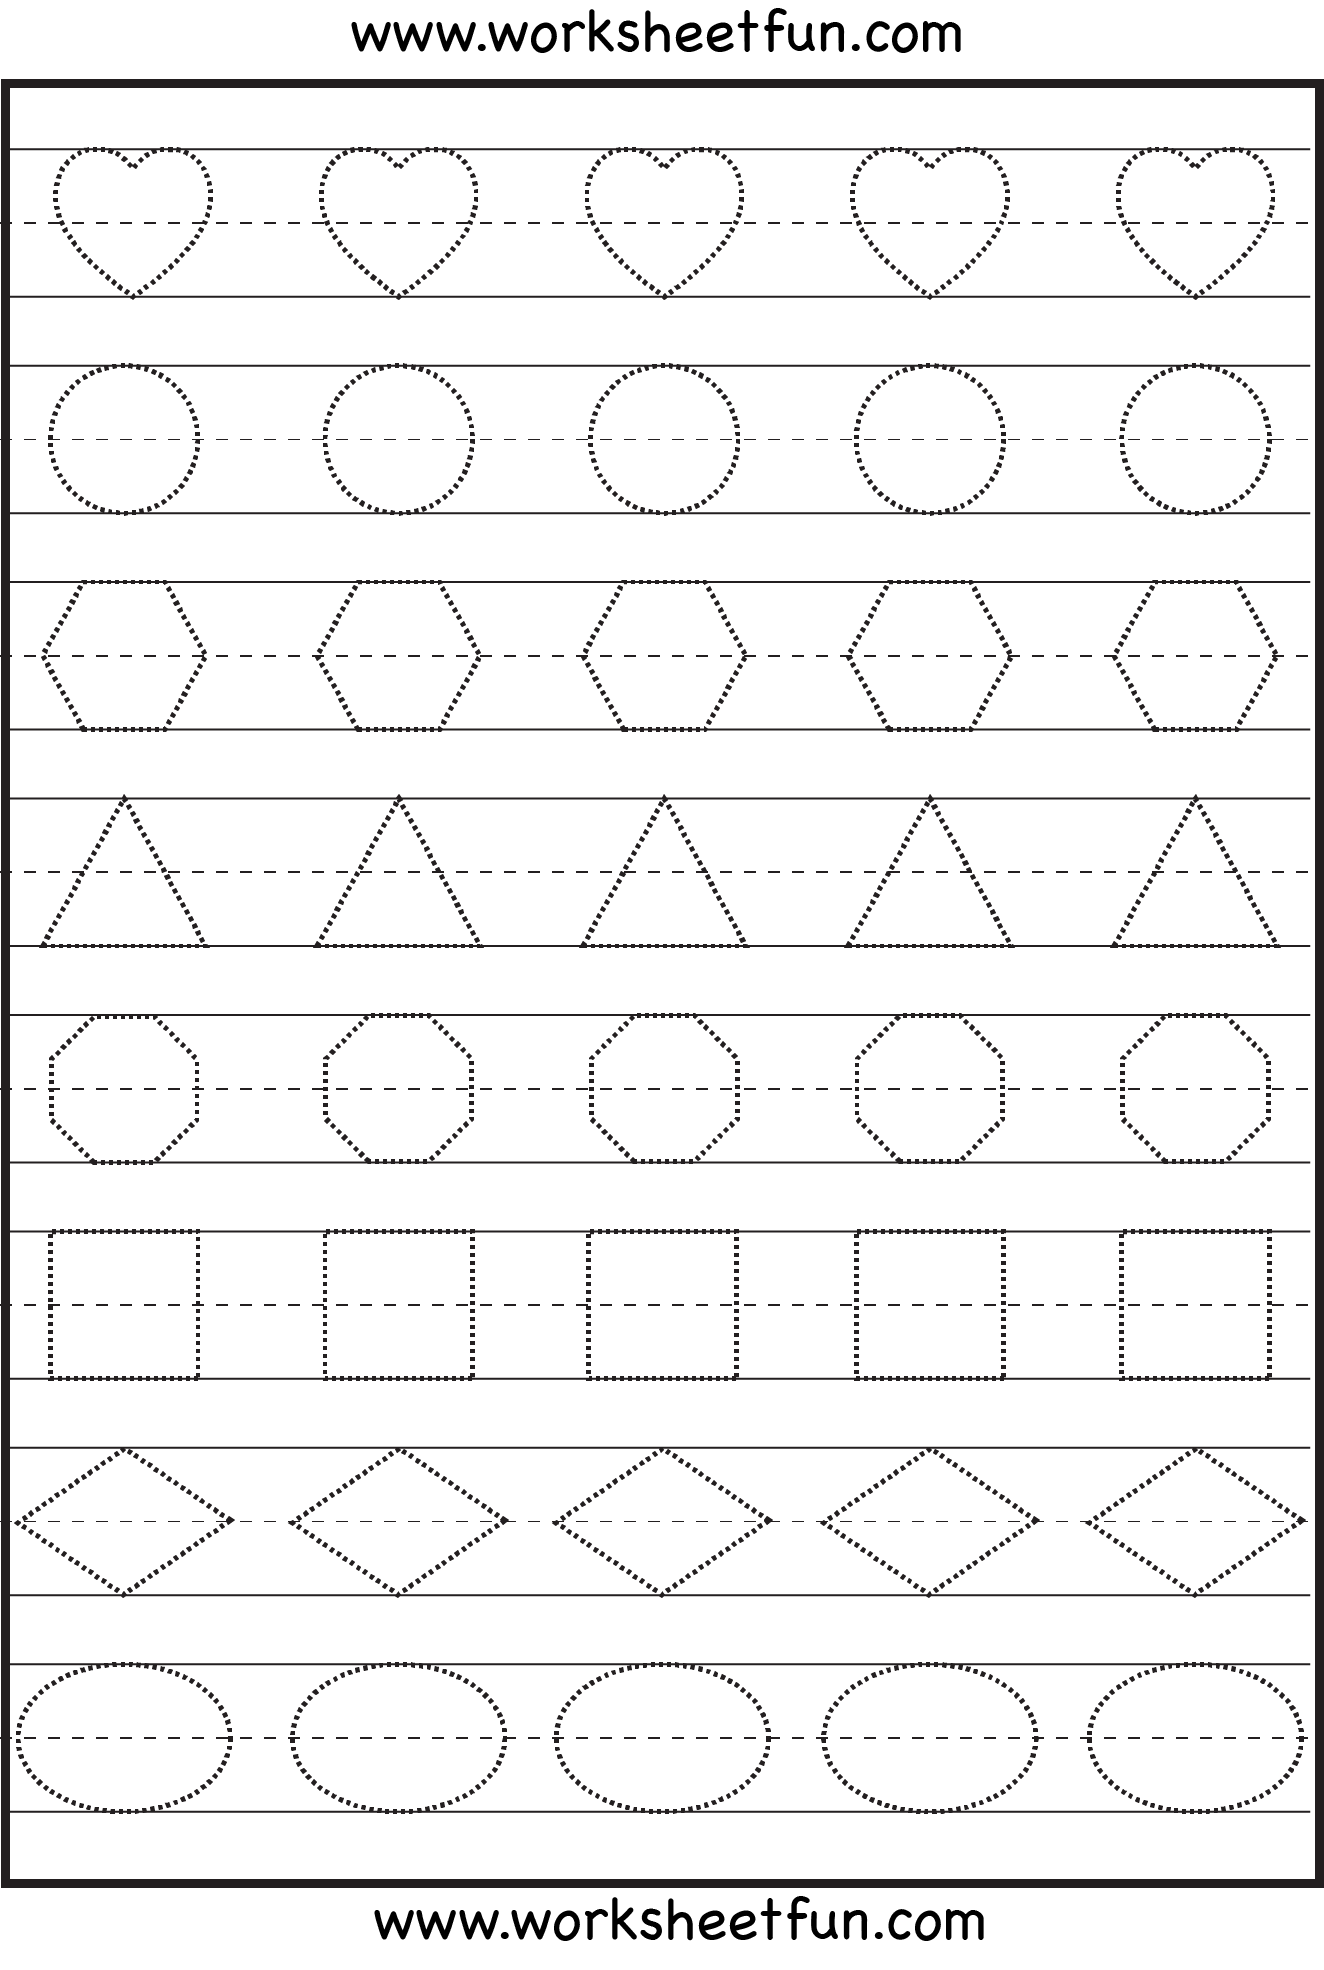 Free Printable Preschool Tracing Worksheet To Print